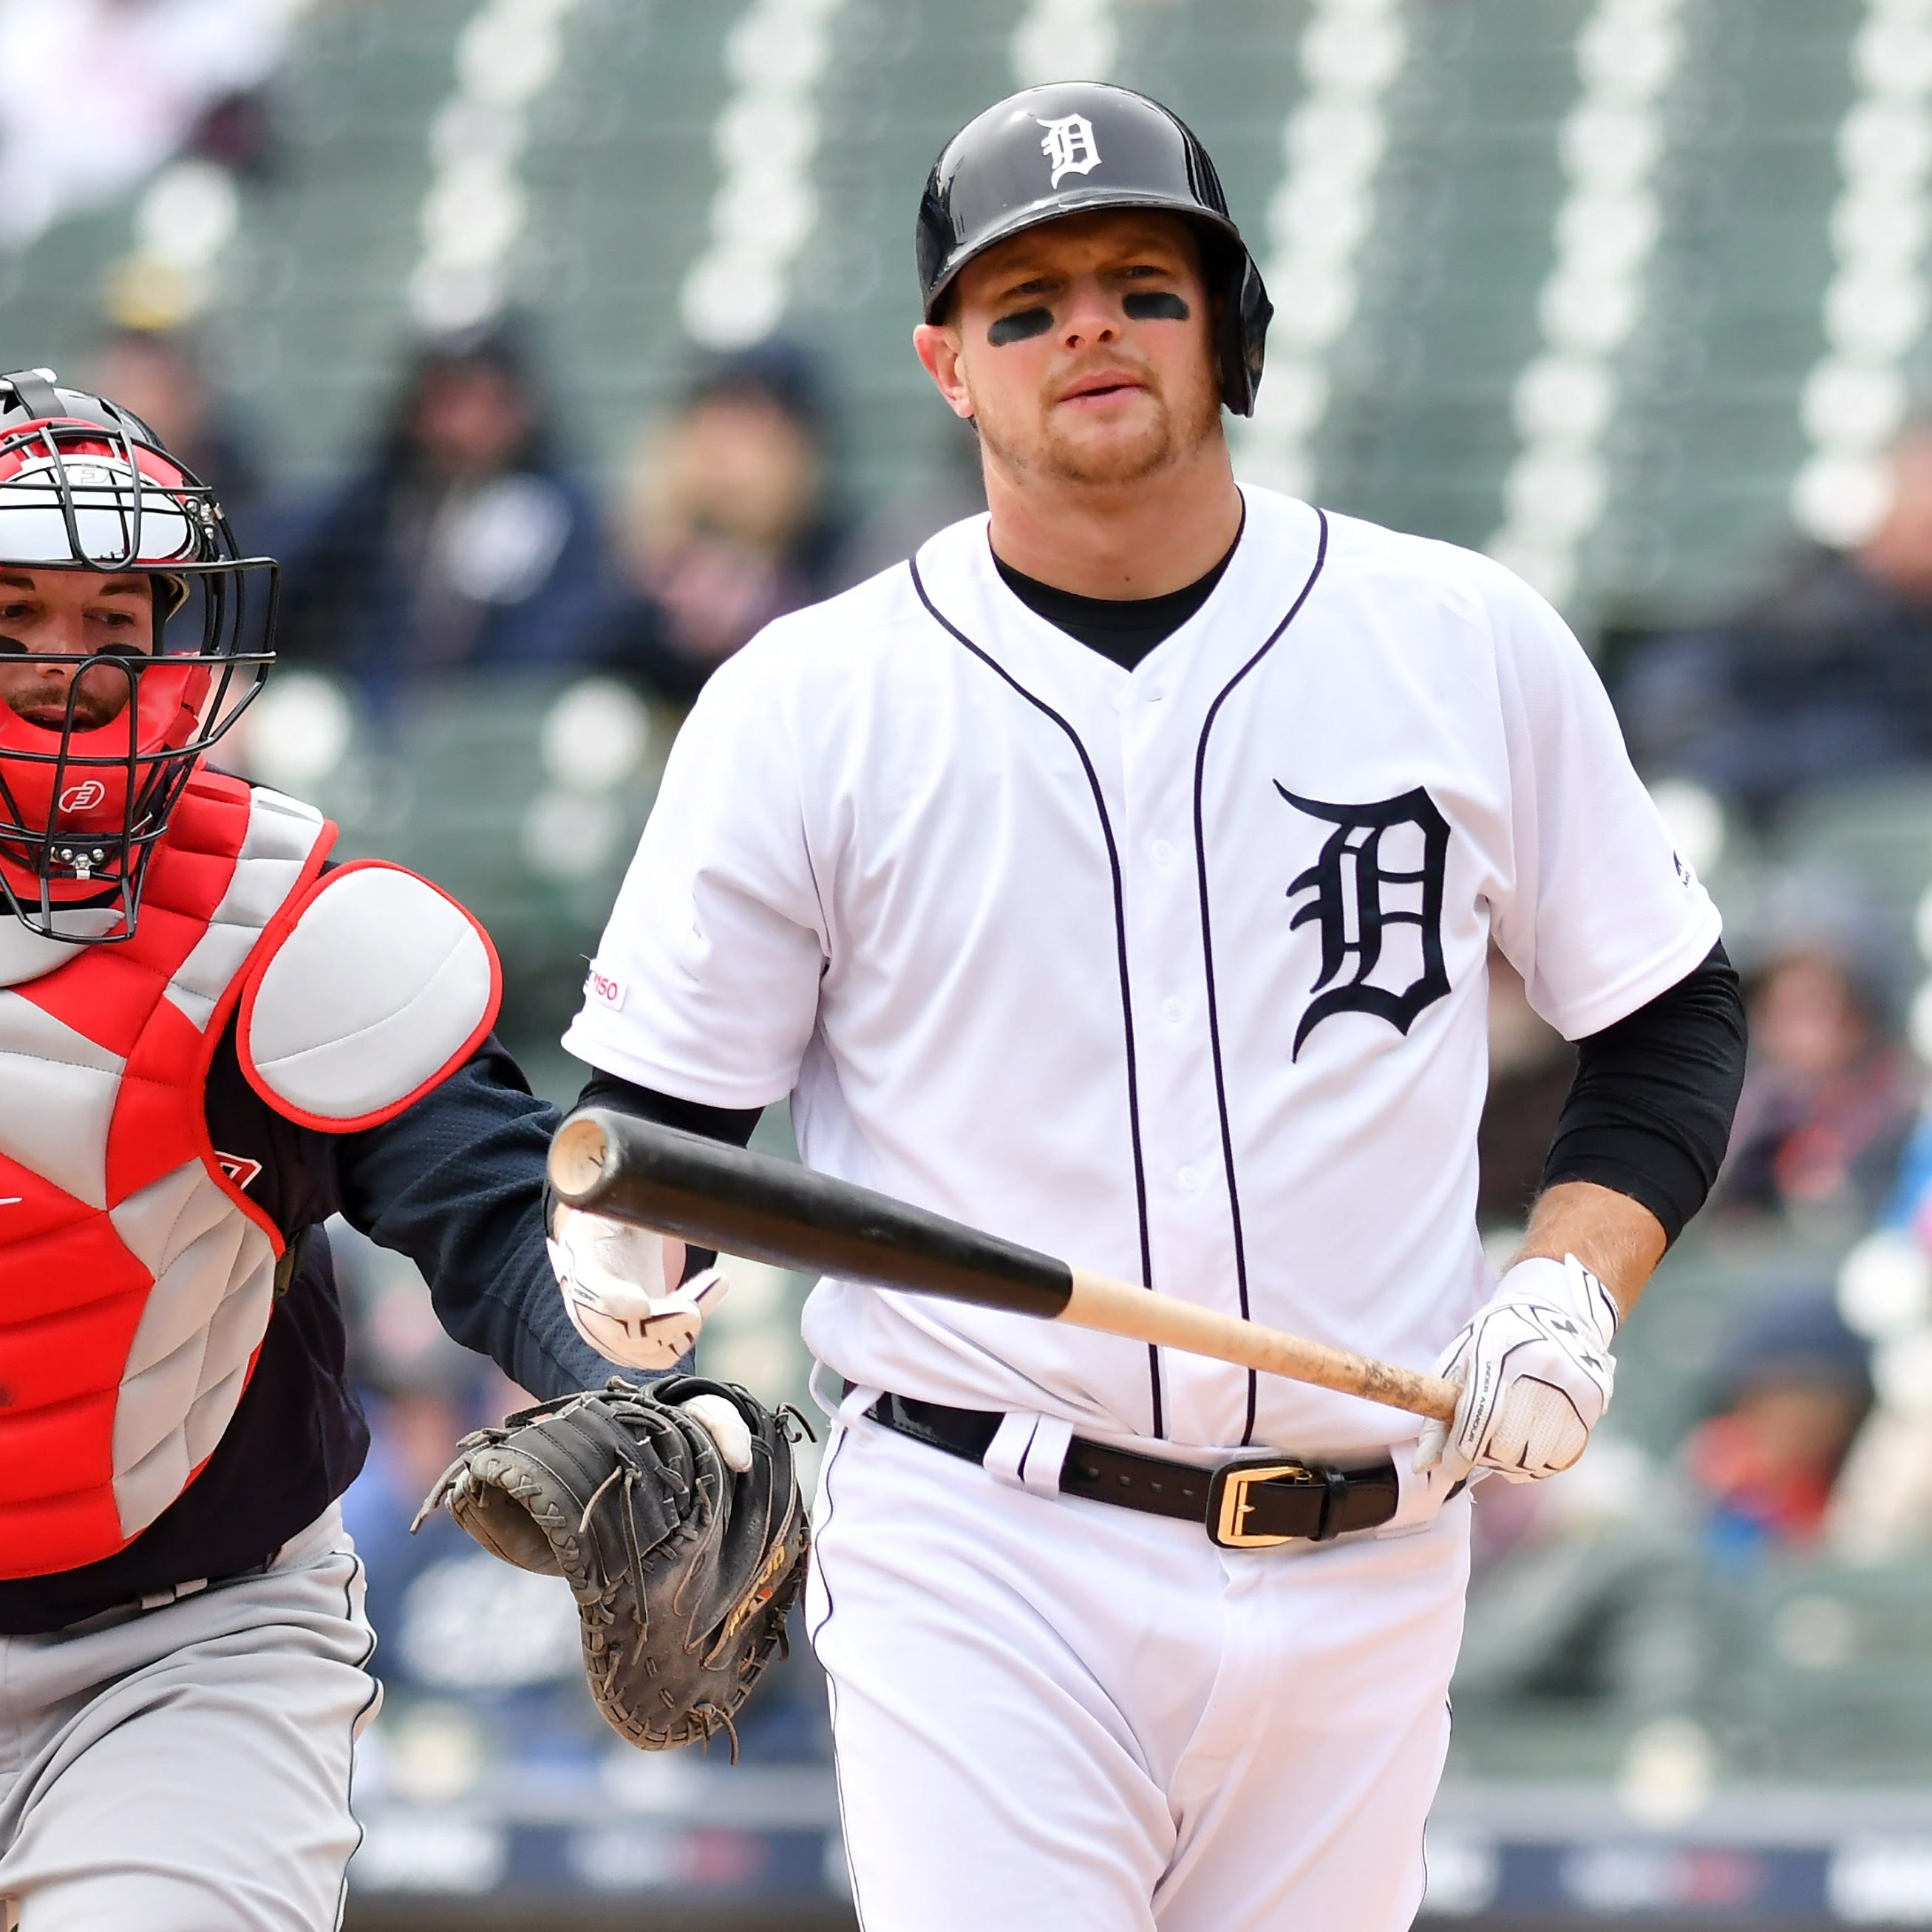 Tigers bats go quietly to Indians; Friday game postponed